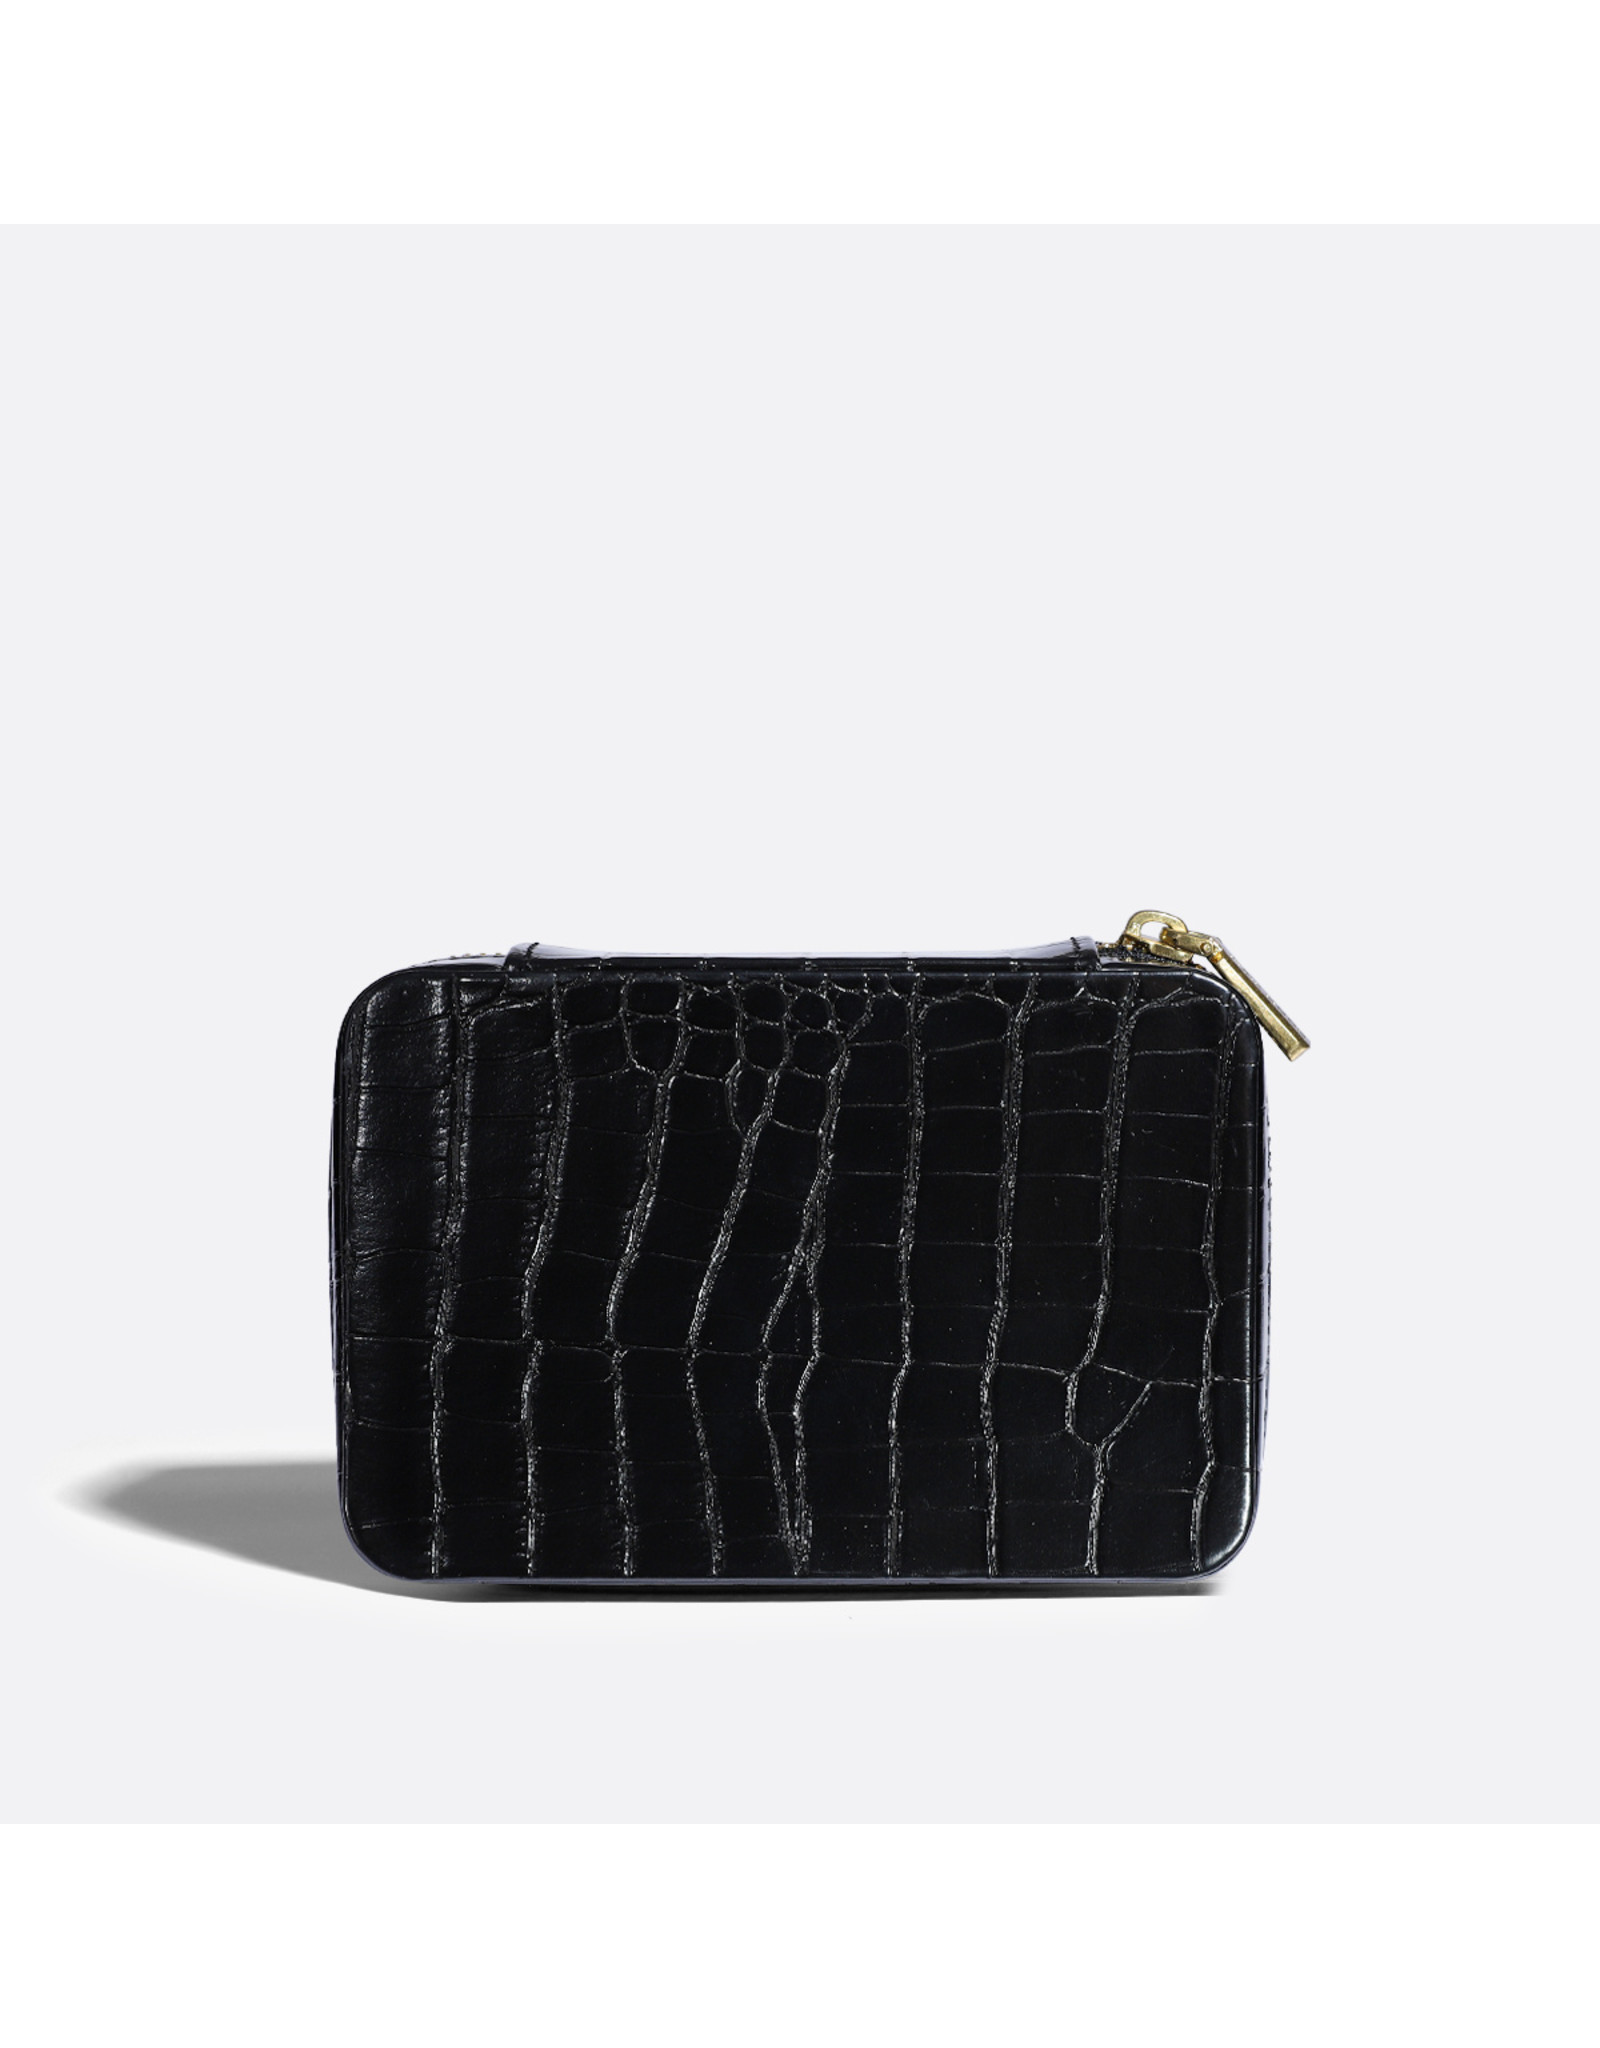 Pixie Mood - Travel Jewelry Case Blake Black Croc